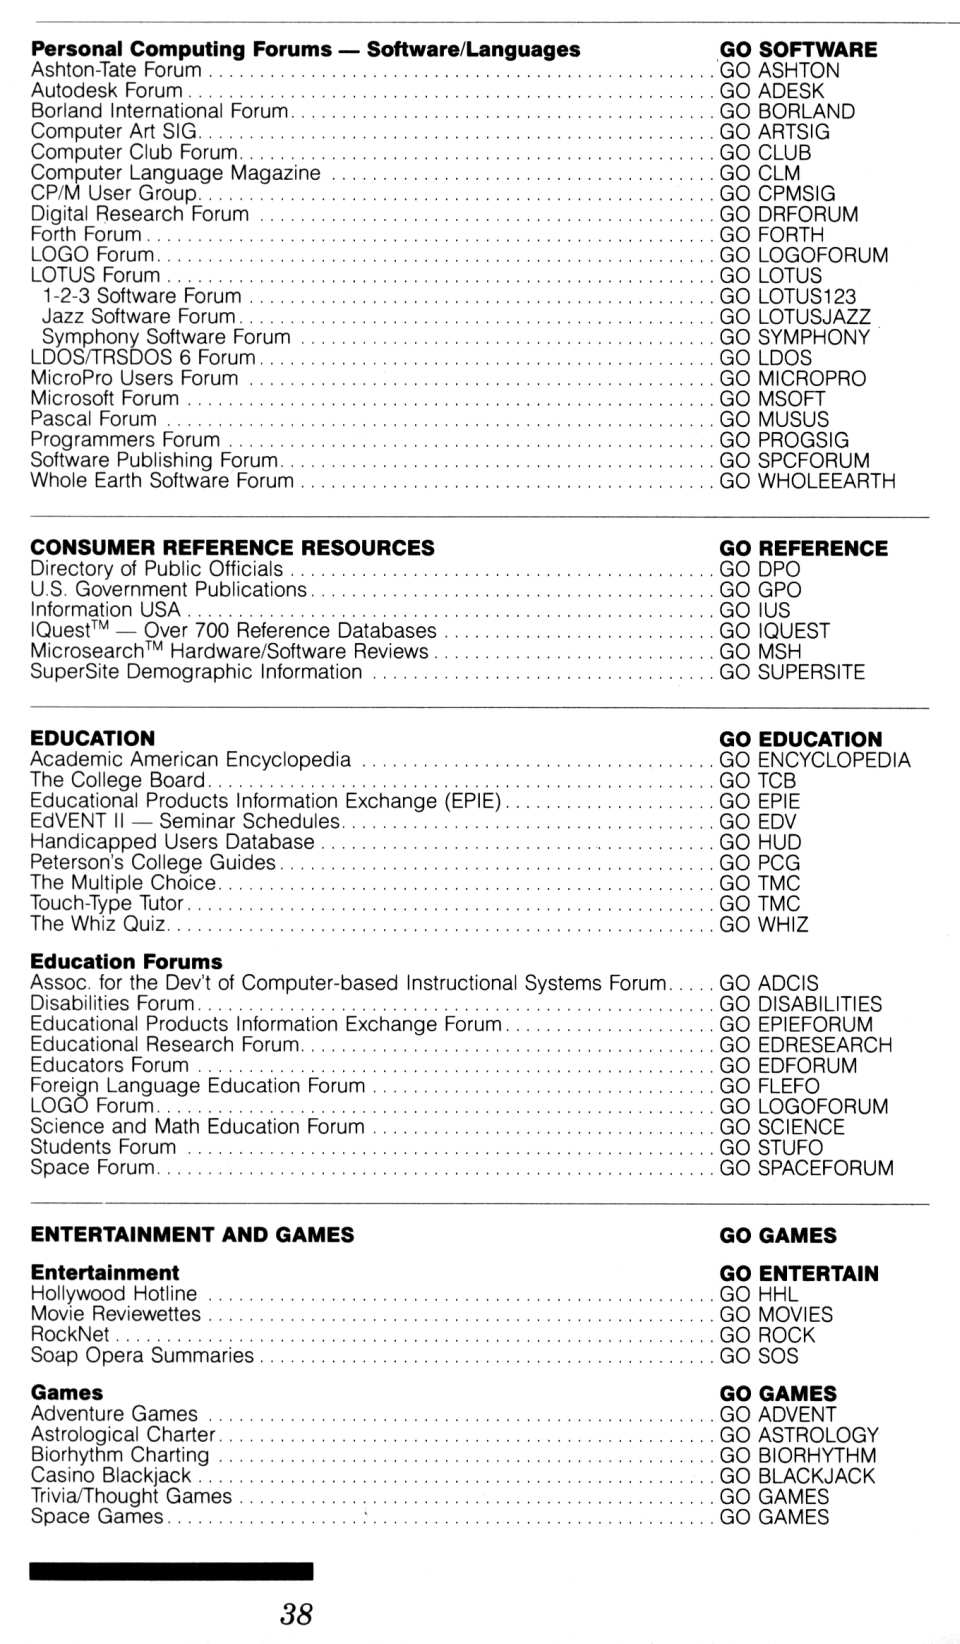 [CompuServe IntroPak page 38/44  Information Service Highlights (2/6)]